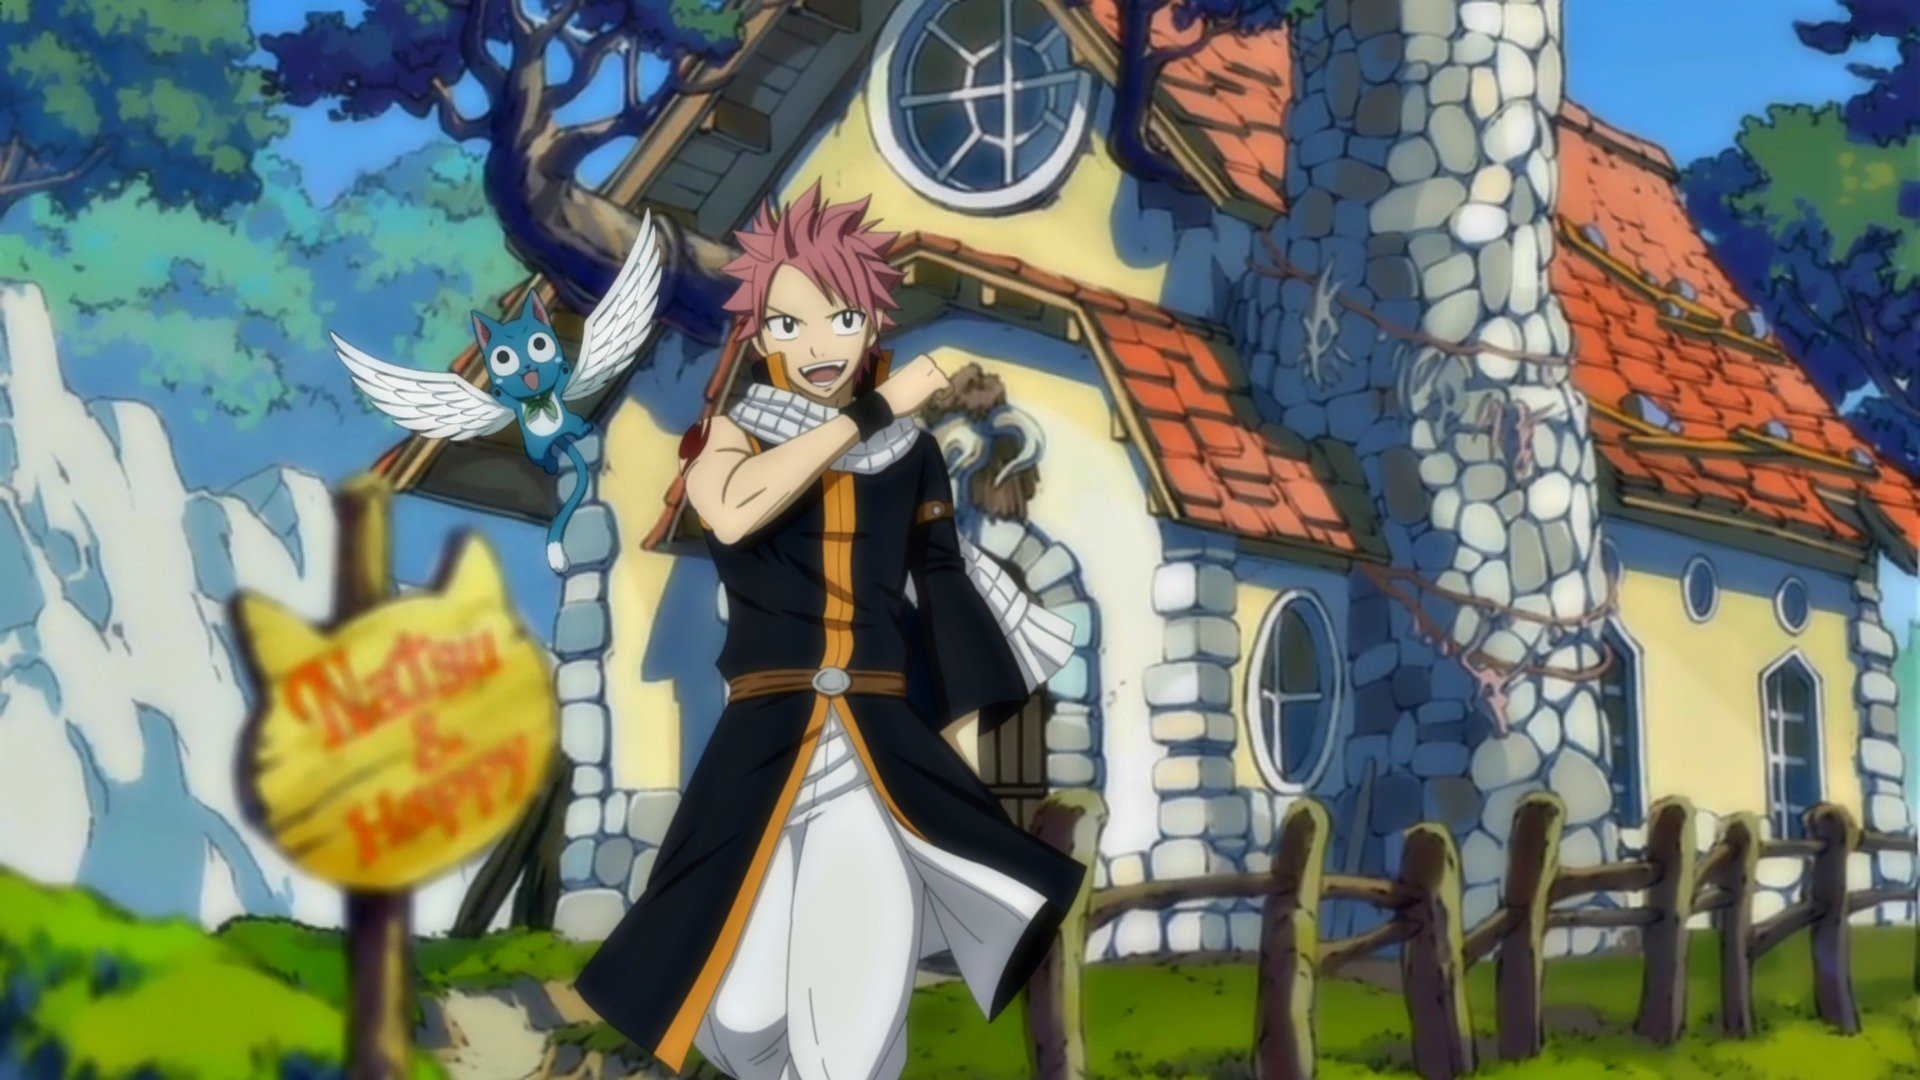 Download full hd 1920x1080 Fairy Tail computer wallpaper ID:40823 for free